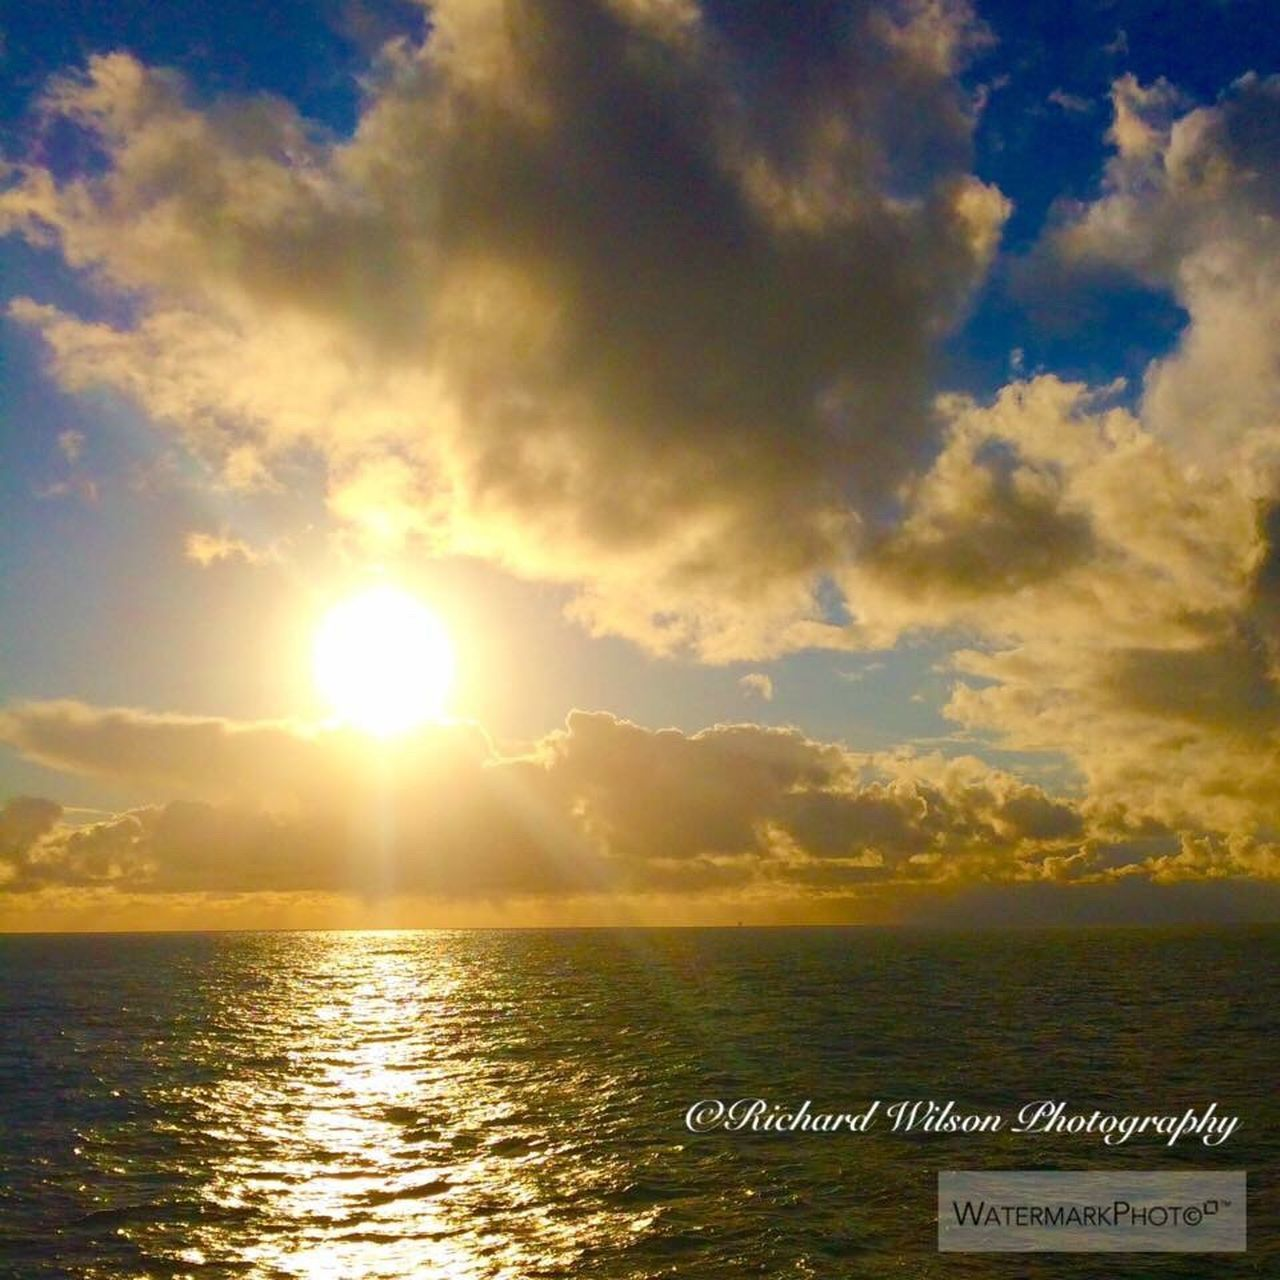 cloud - sky, sky, sea, sunset, water, tranquility, sunbeam, scenics, sunlight, sun, no people, tranquil scene, outdoors, beauty in nature, nature, horizon over water, beach, day